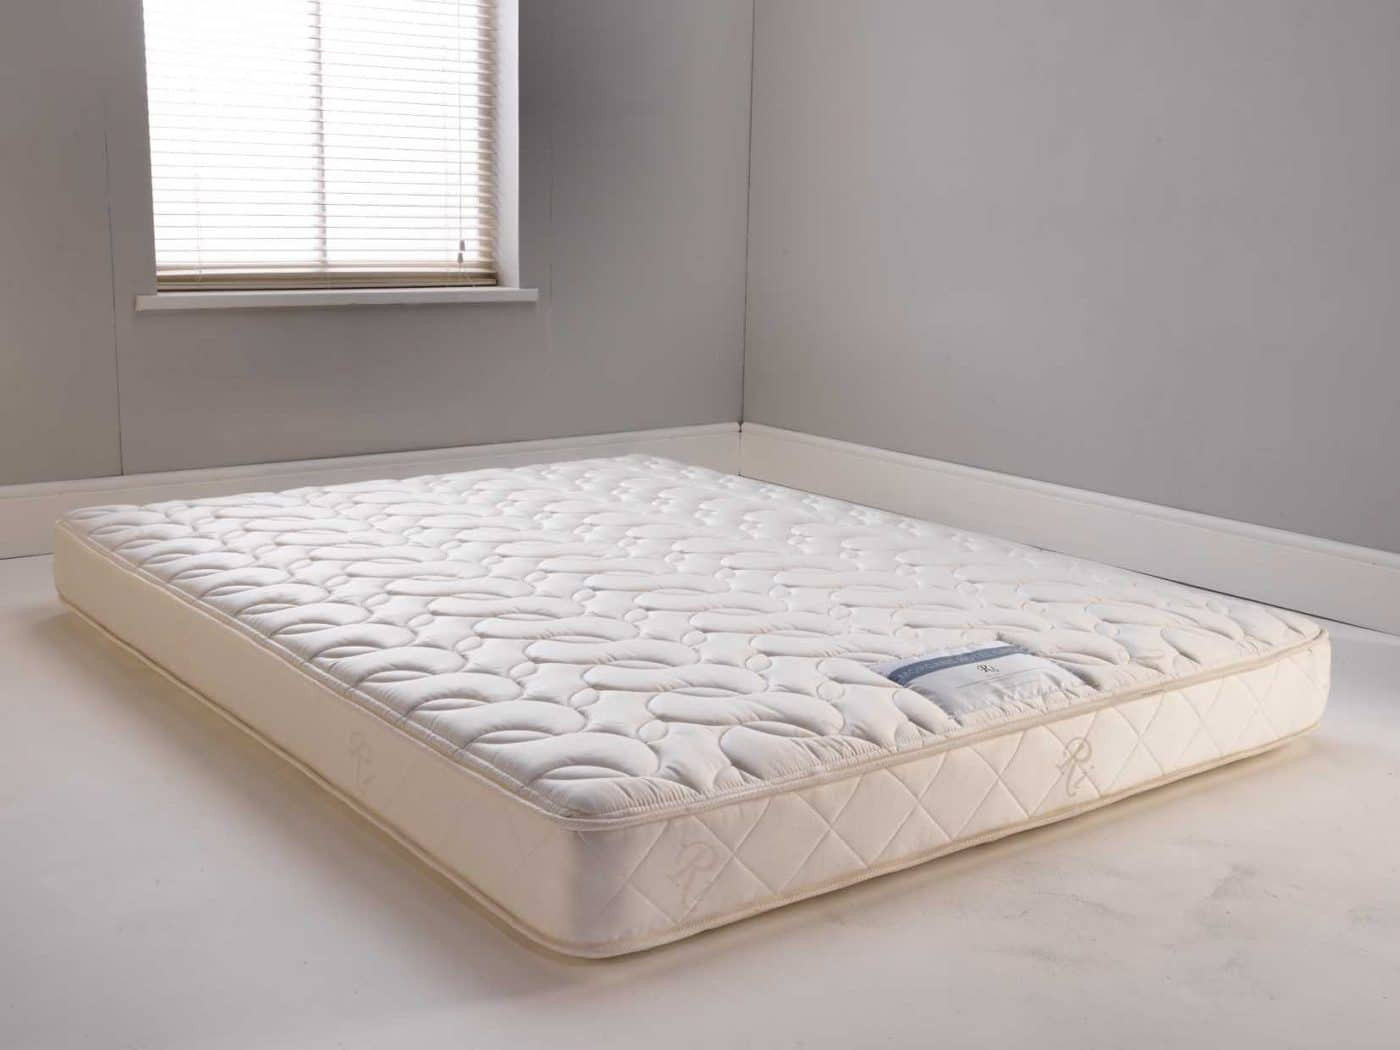 Luxury Beds - Morgan Mattress